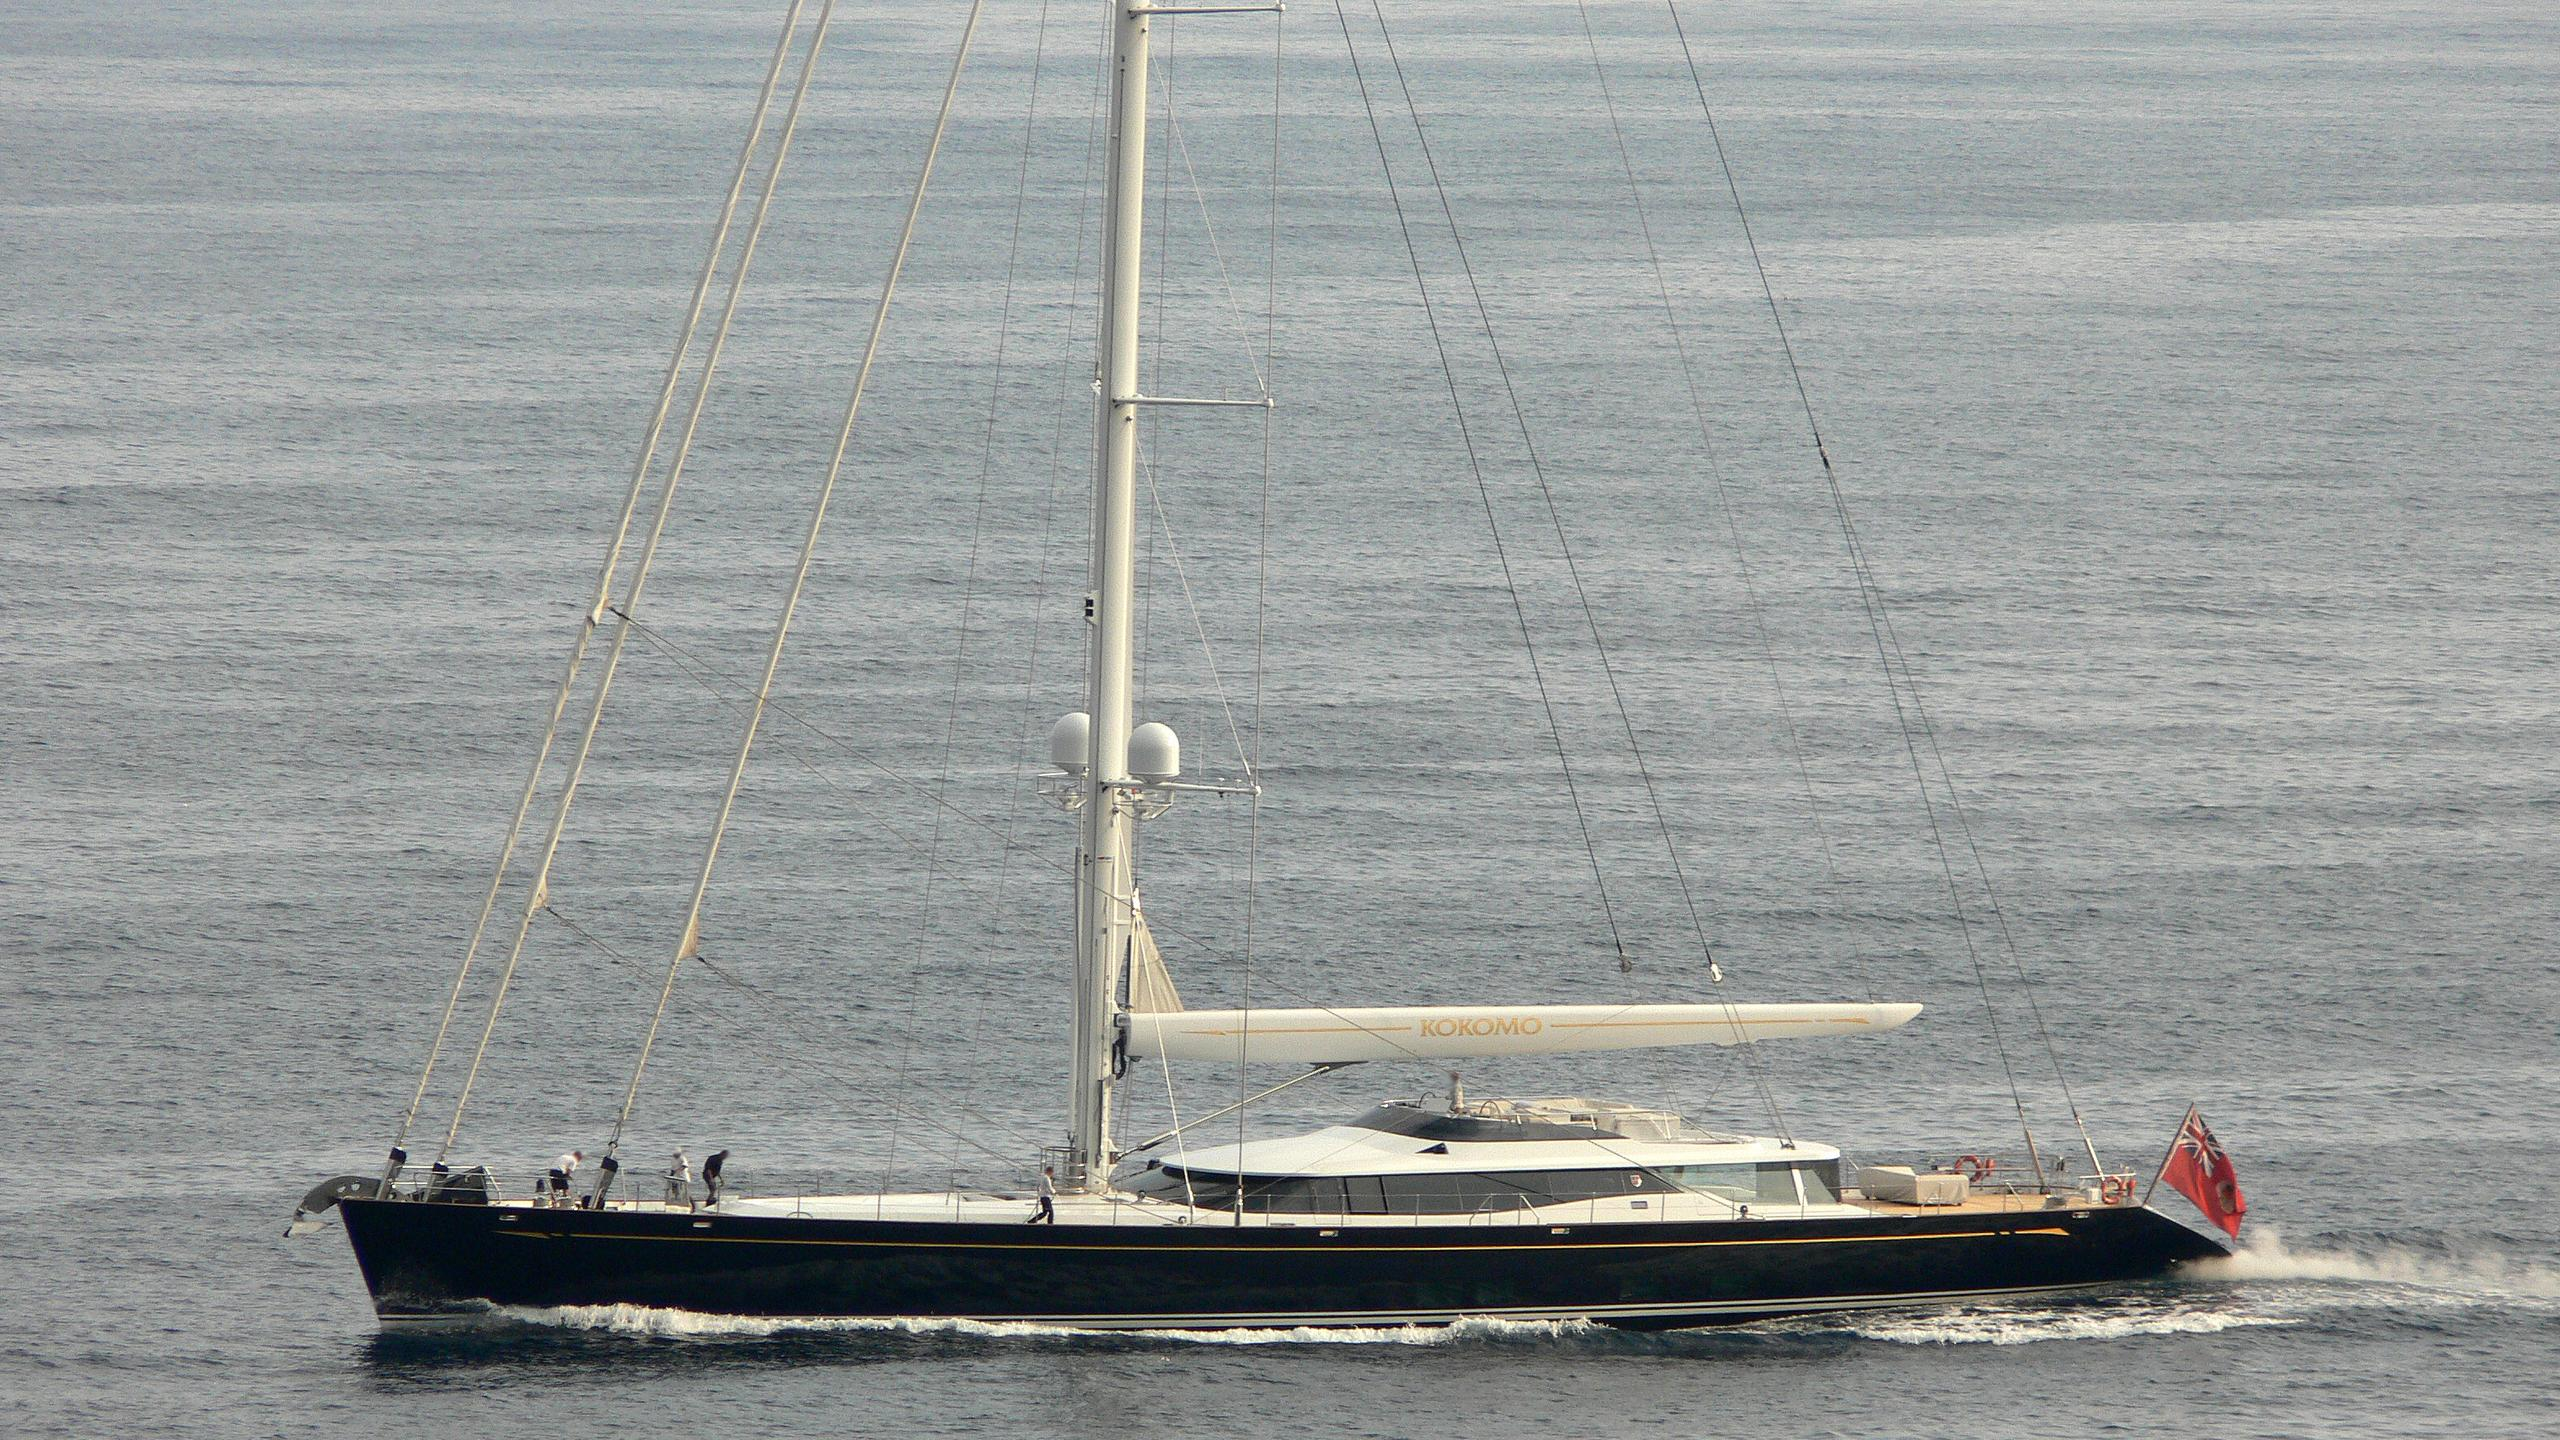 prana-sailing-yacht-alloy-2006-52m-profile